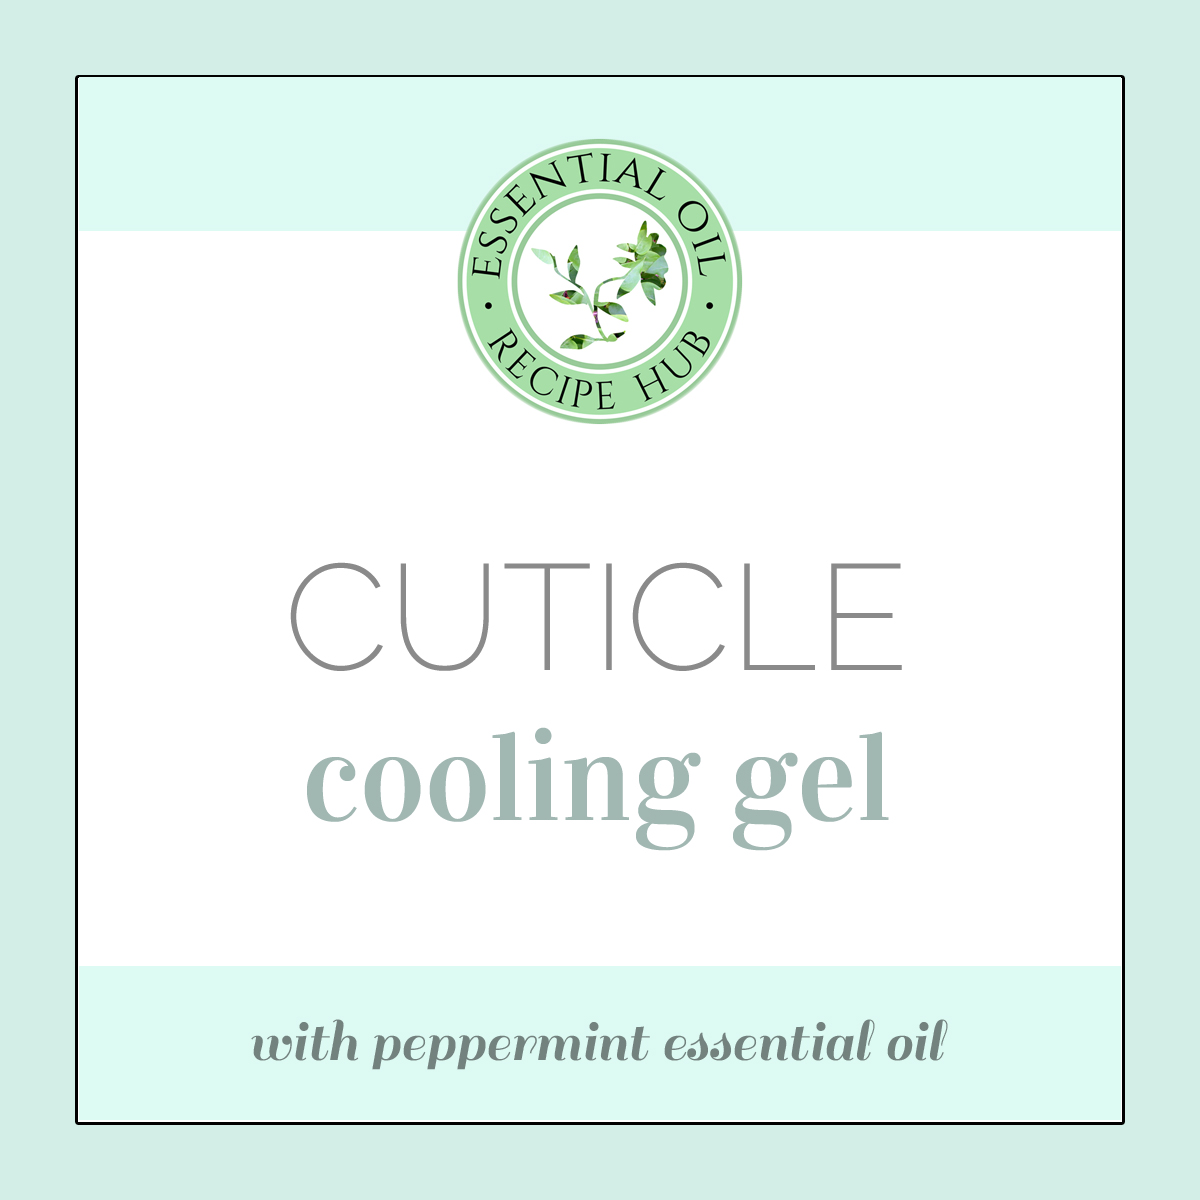 cuticle cooling gel